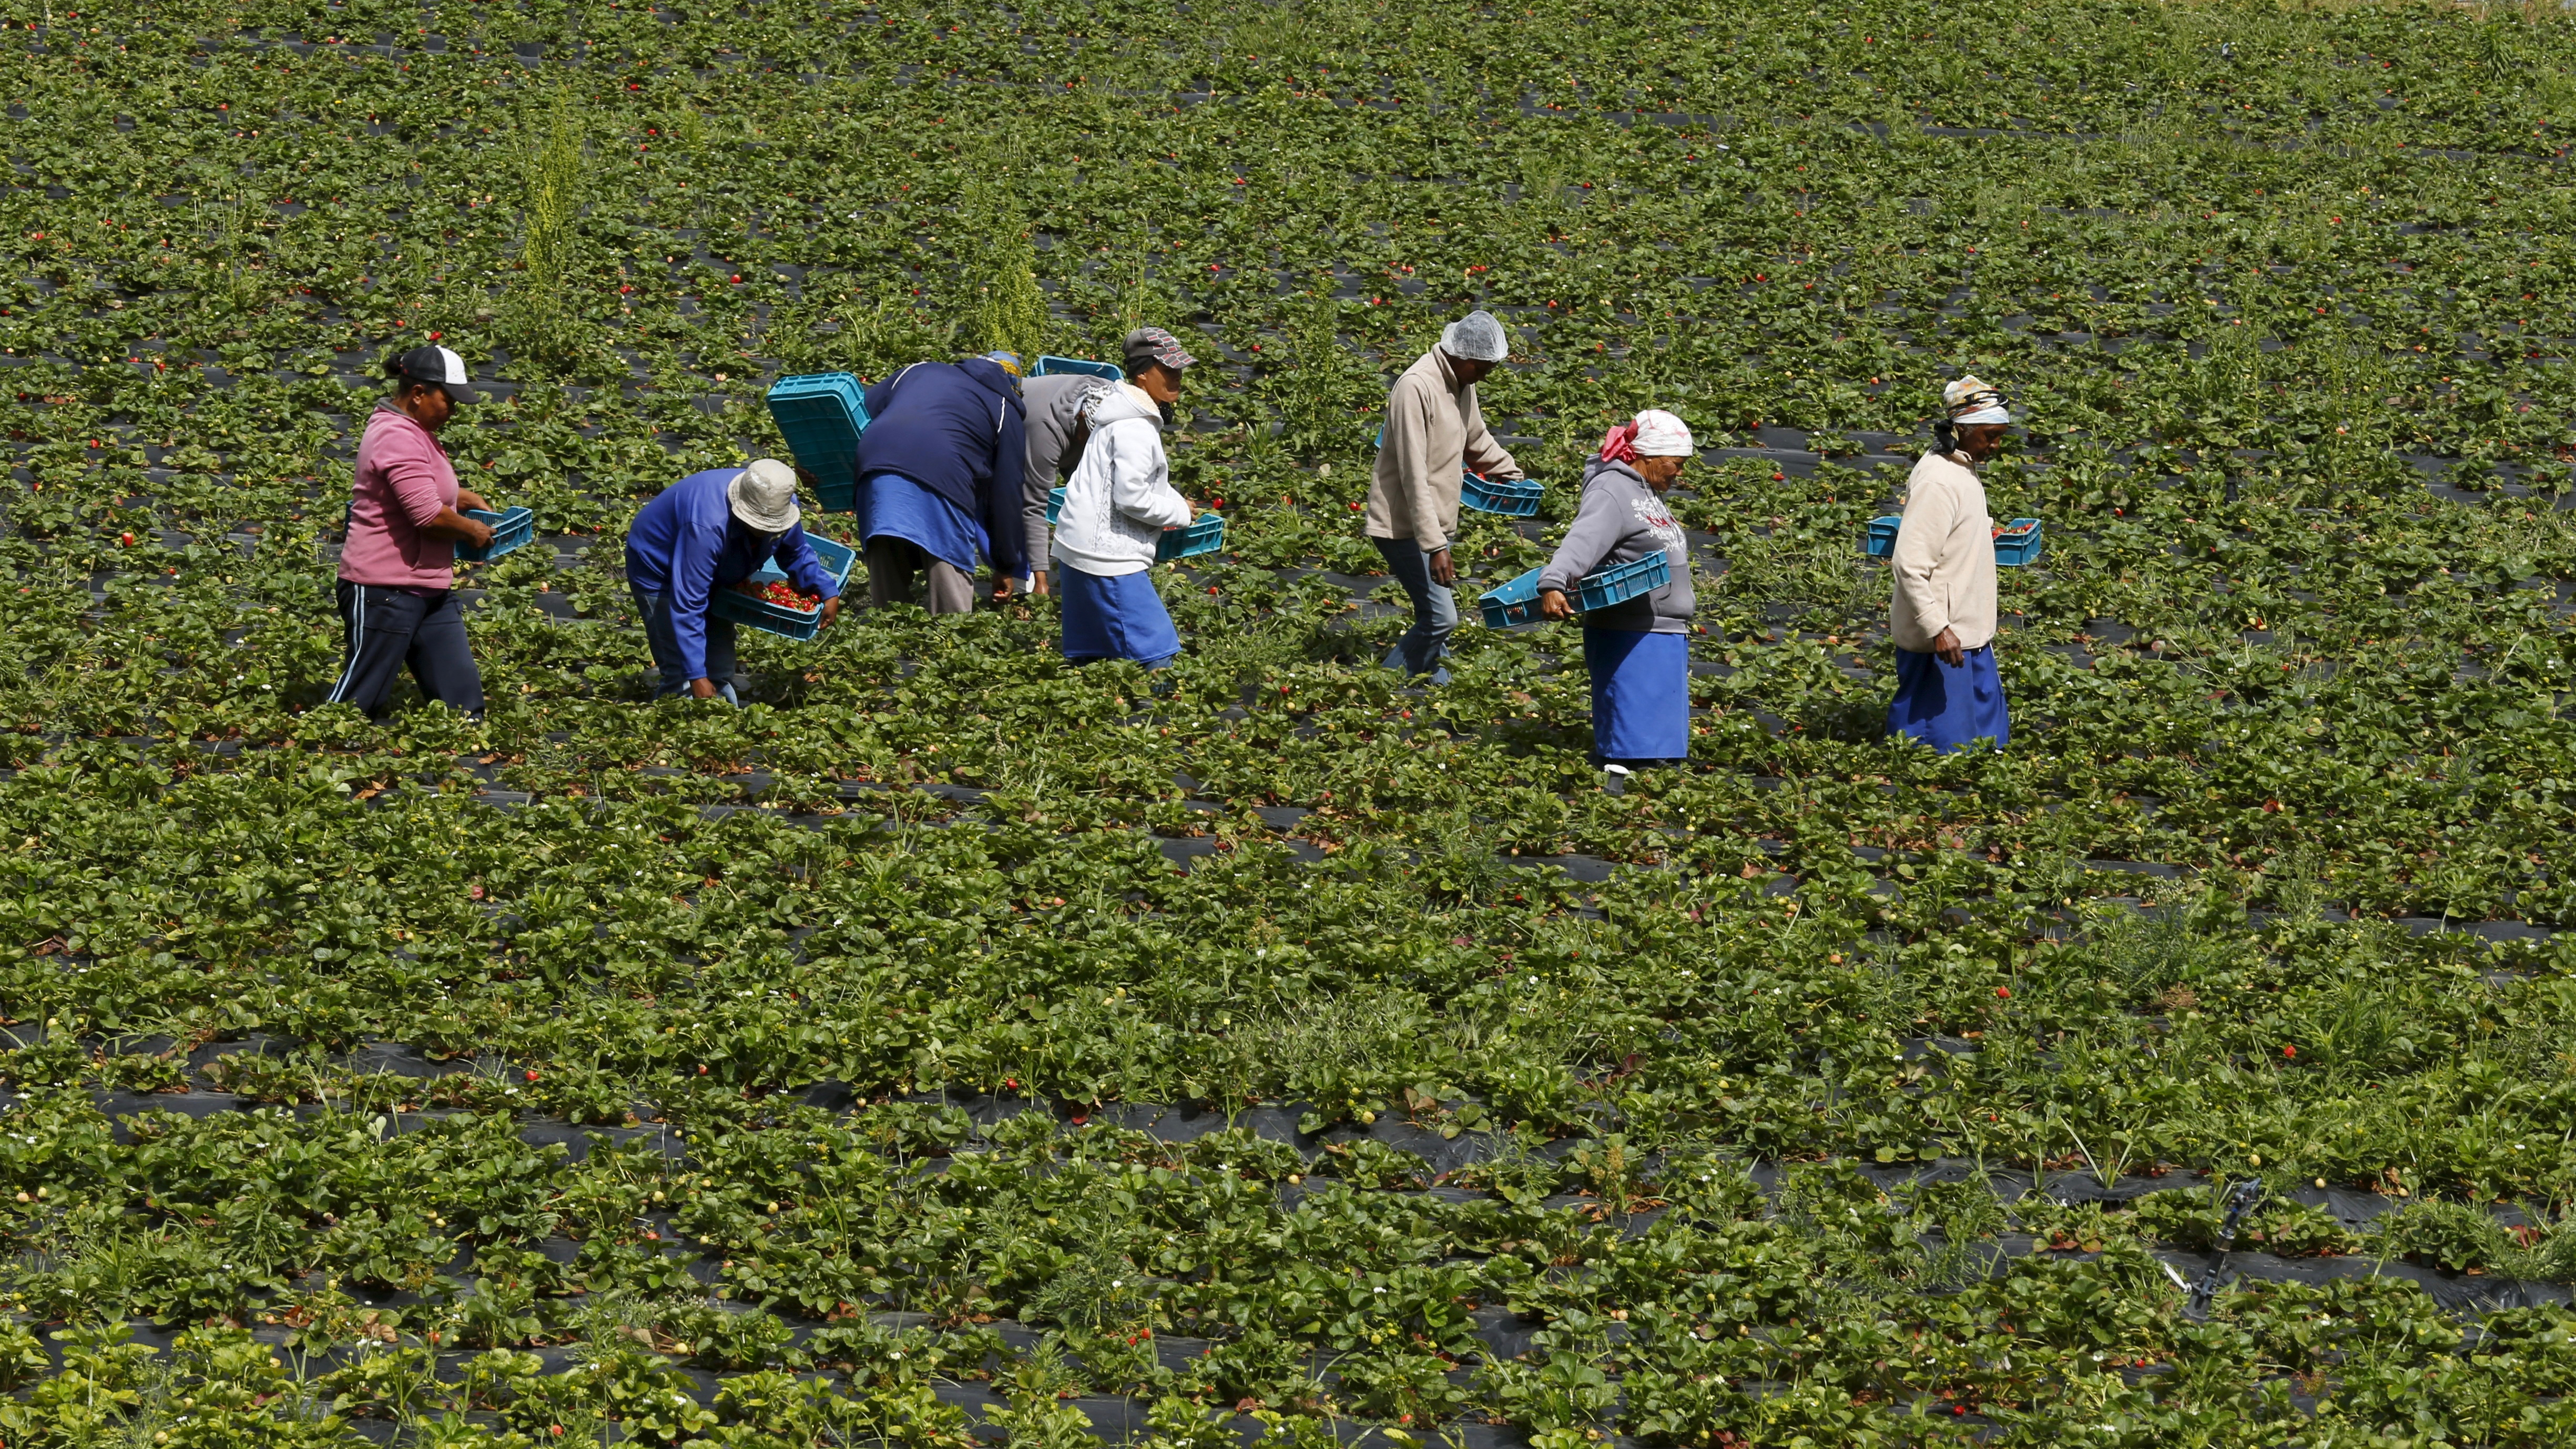 Workers pick strawberries at a farm near Stellenbosch, South Africa, November 13, 2015. U.S. President Barack Obama said last week that he planned to revoke duty-free status for South African agricultural goods in 60 days under a program set up to help African exporters. Picture taken November 13, 2015. REUTERS/Mike Hutchings - RTS7KEE